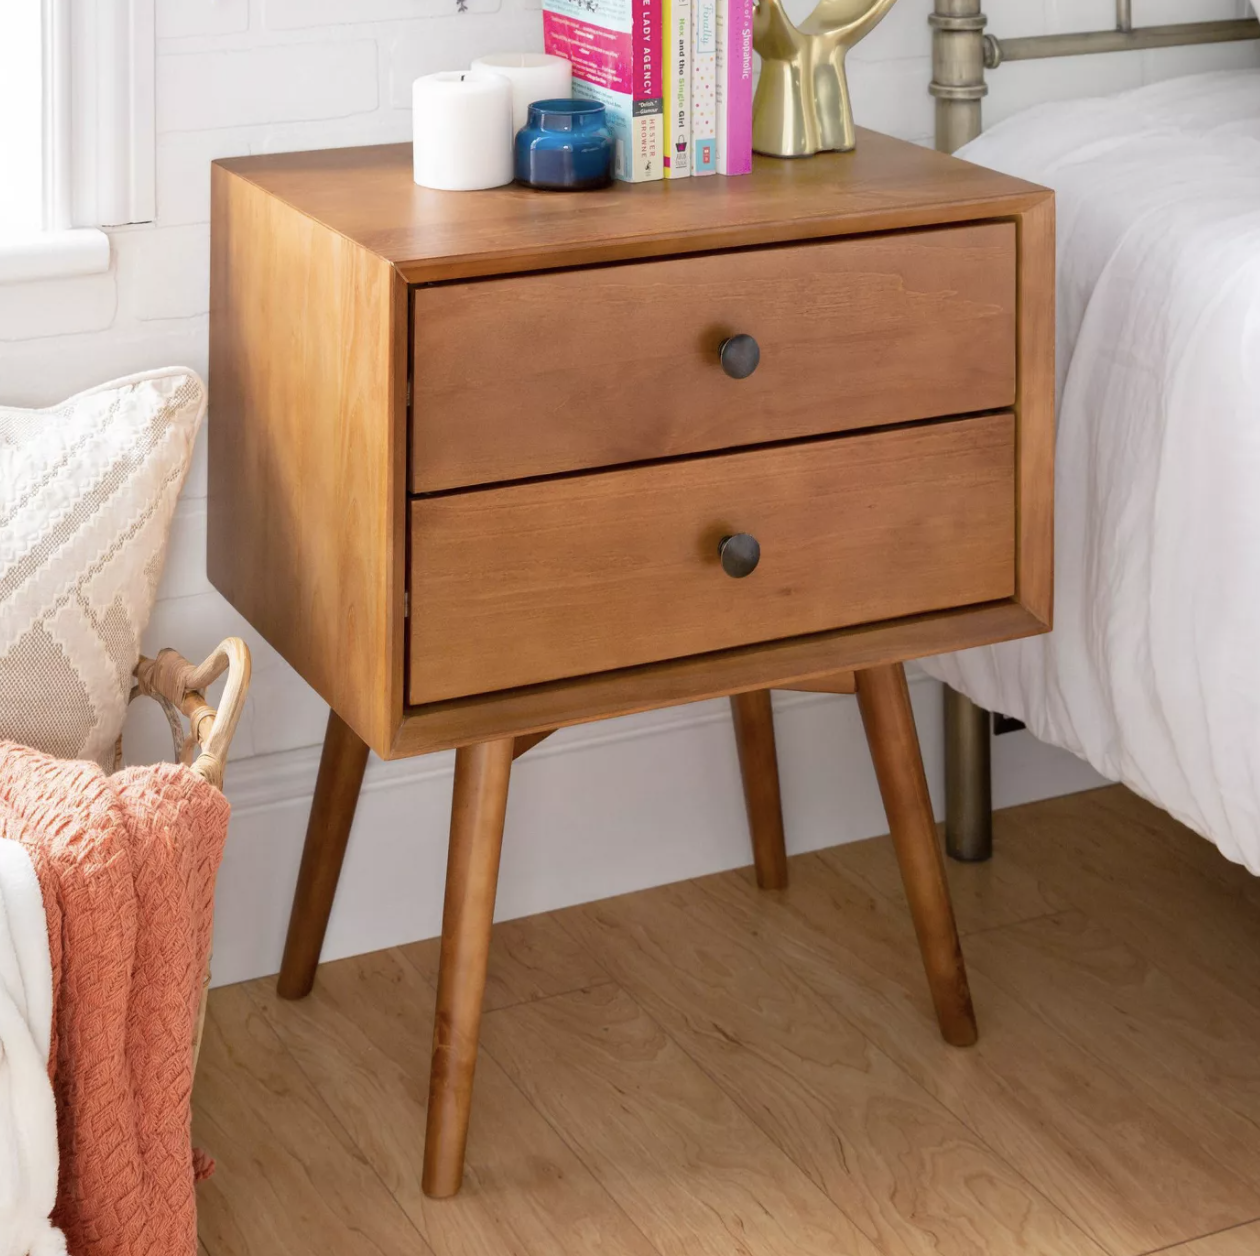 a mid-century modern two-drawer wooden end table